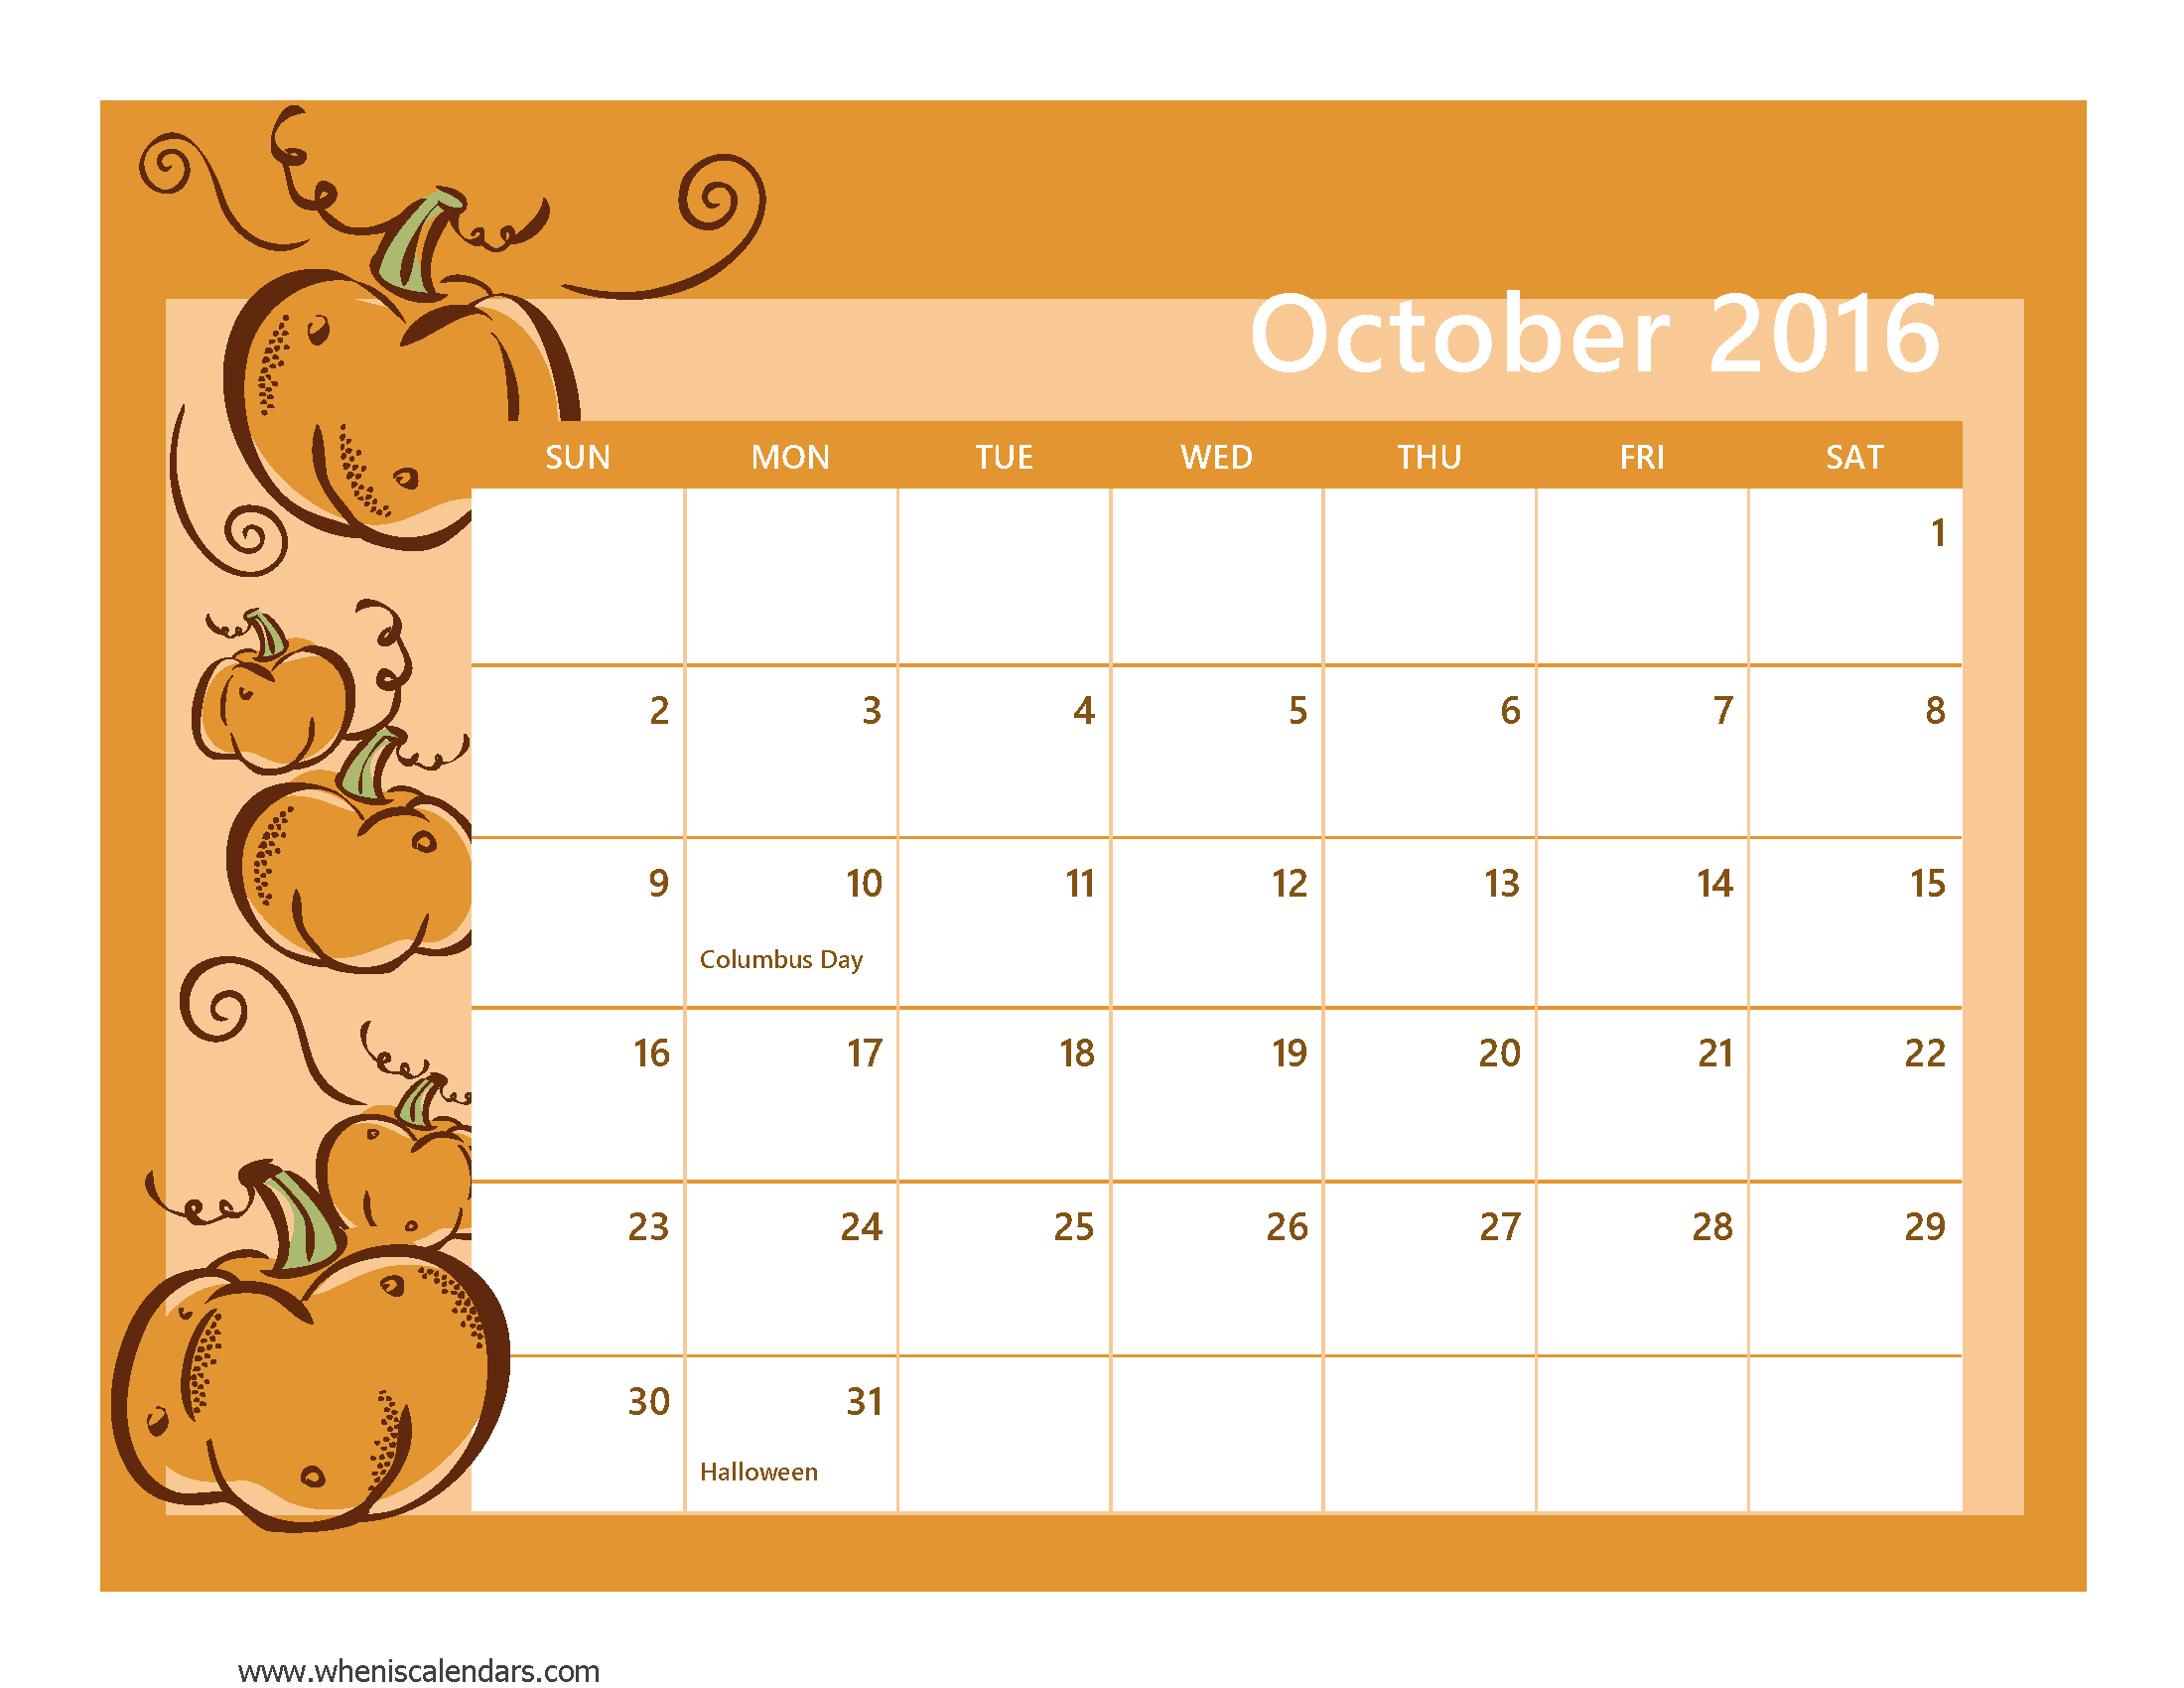 October 2016 Calendar, Printable & Template | Halloween Celebration